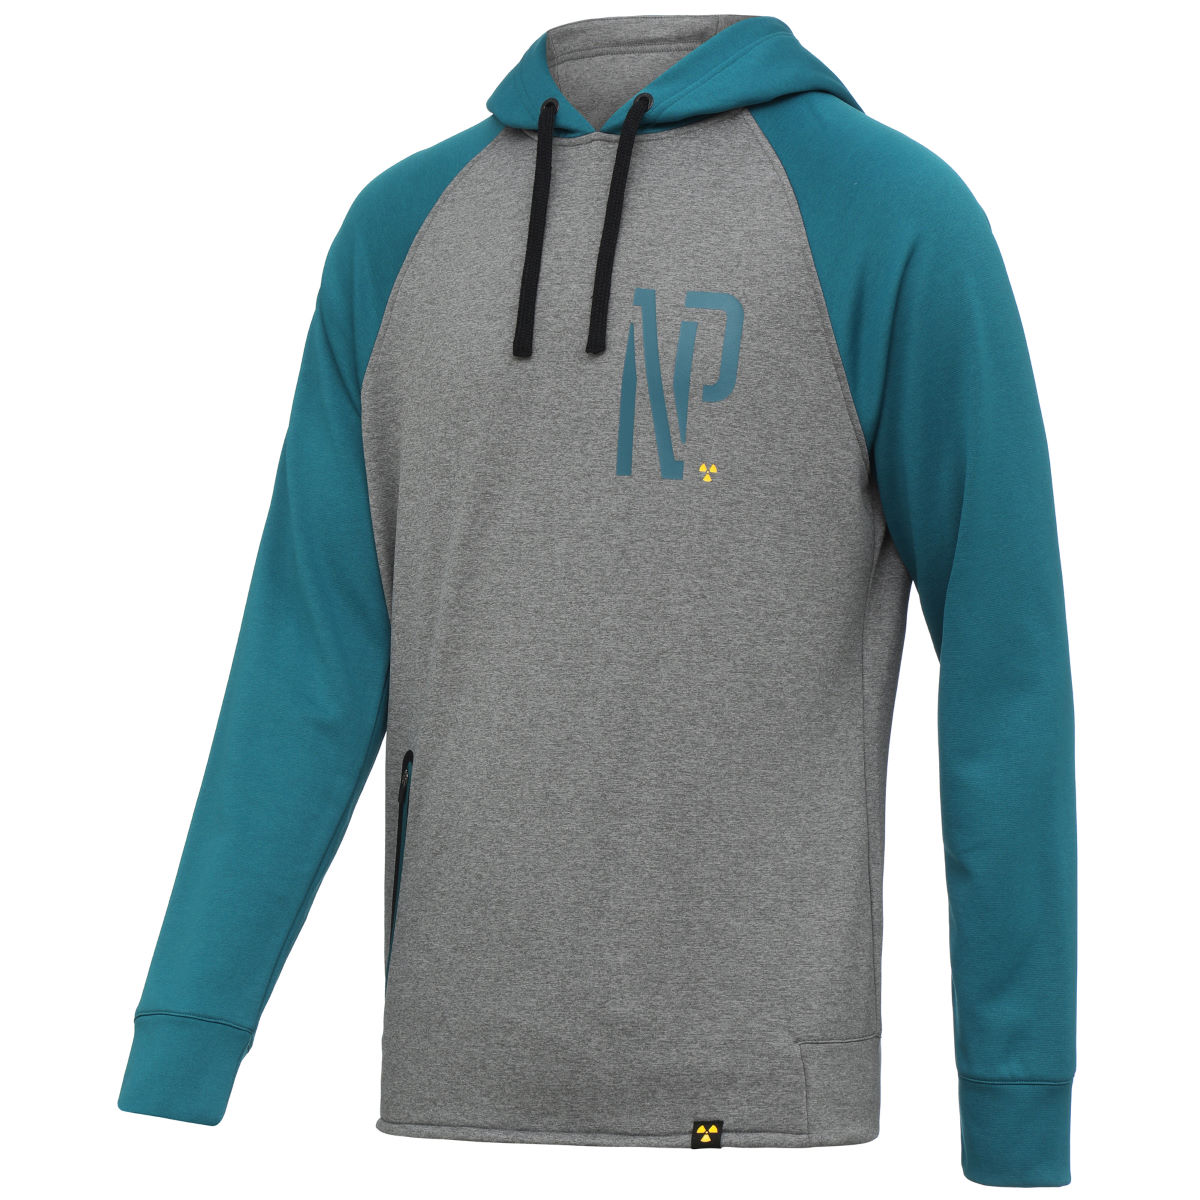 Nukeproof Nukeproof Outland Casual Hoodie   Hoodies